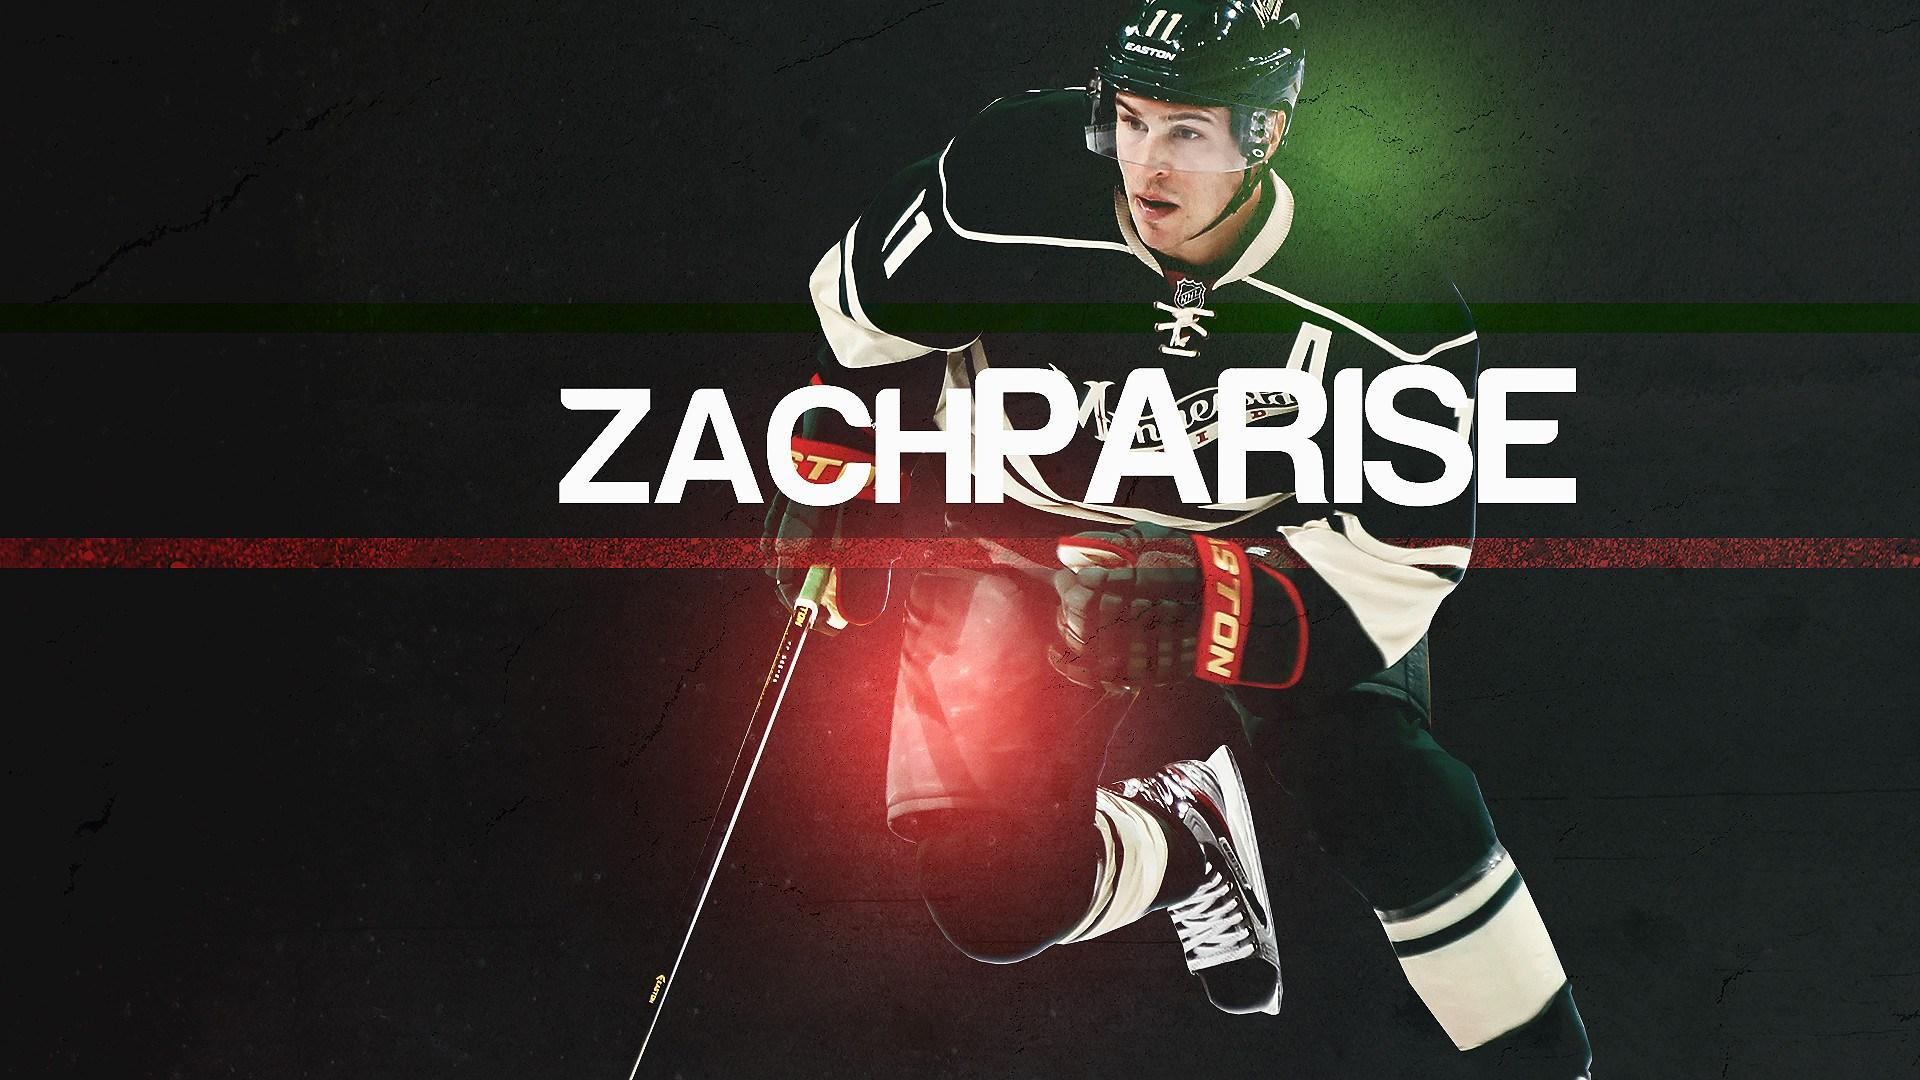 Zach Parise Wild Wallpapers